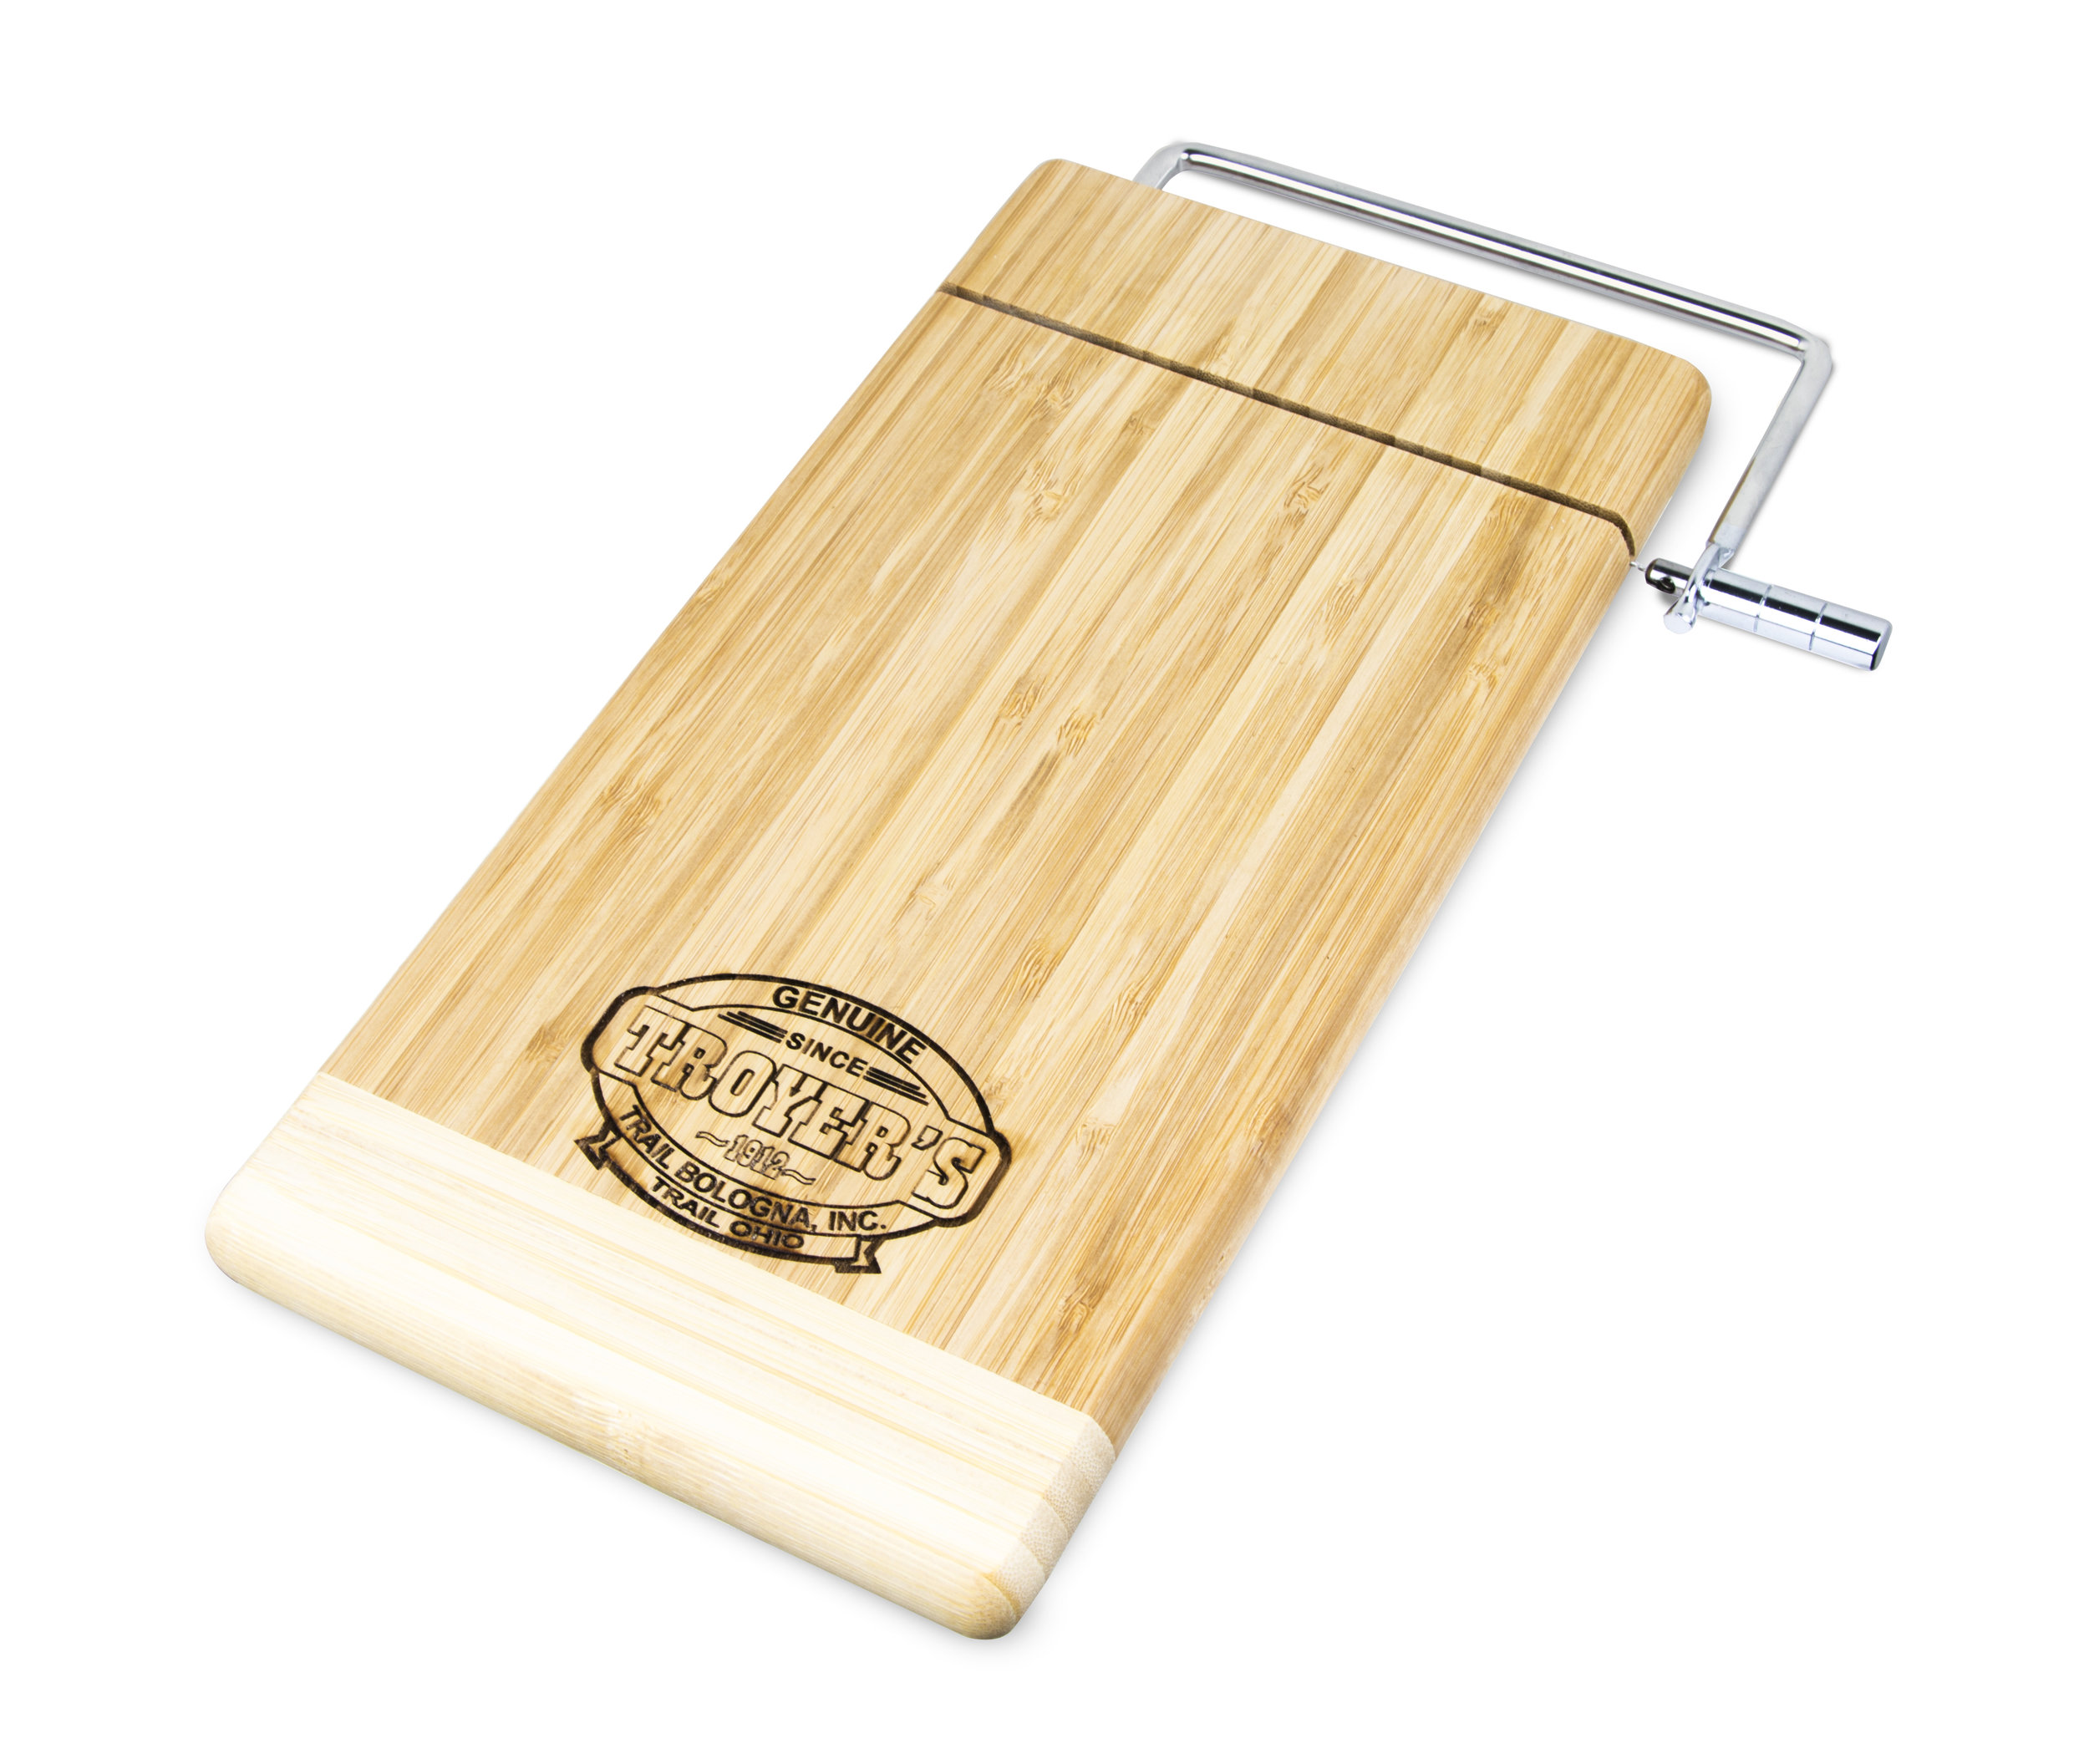 Troyers Cheese Guillotine.jpg